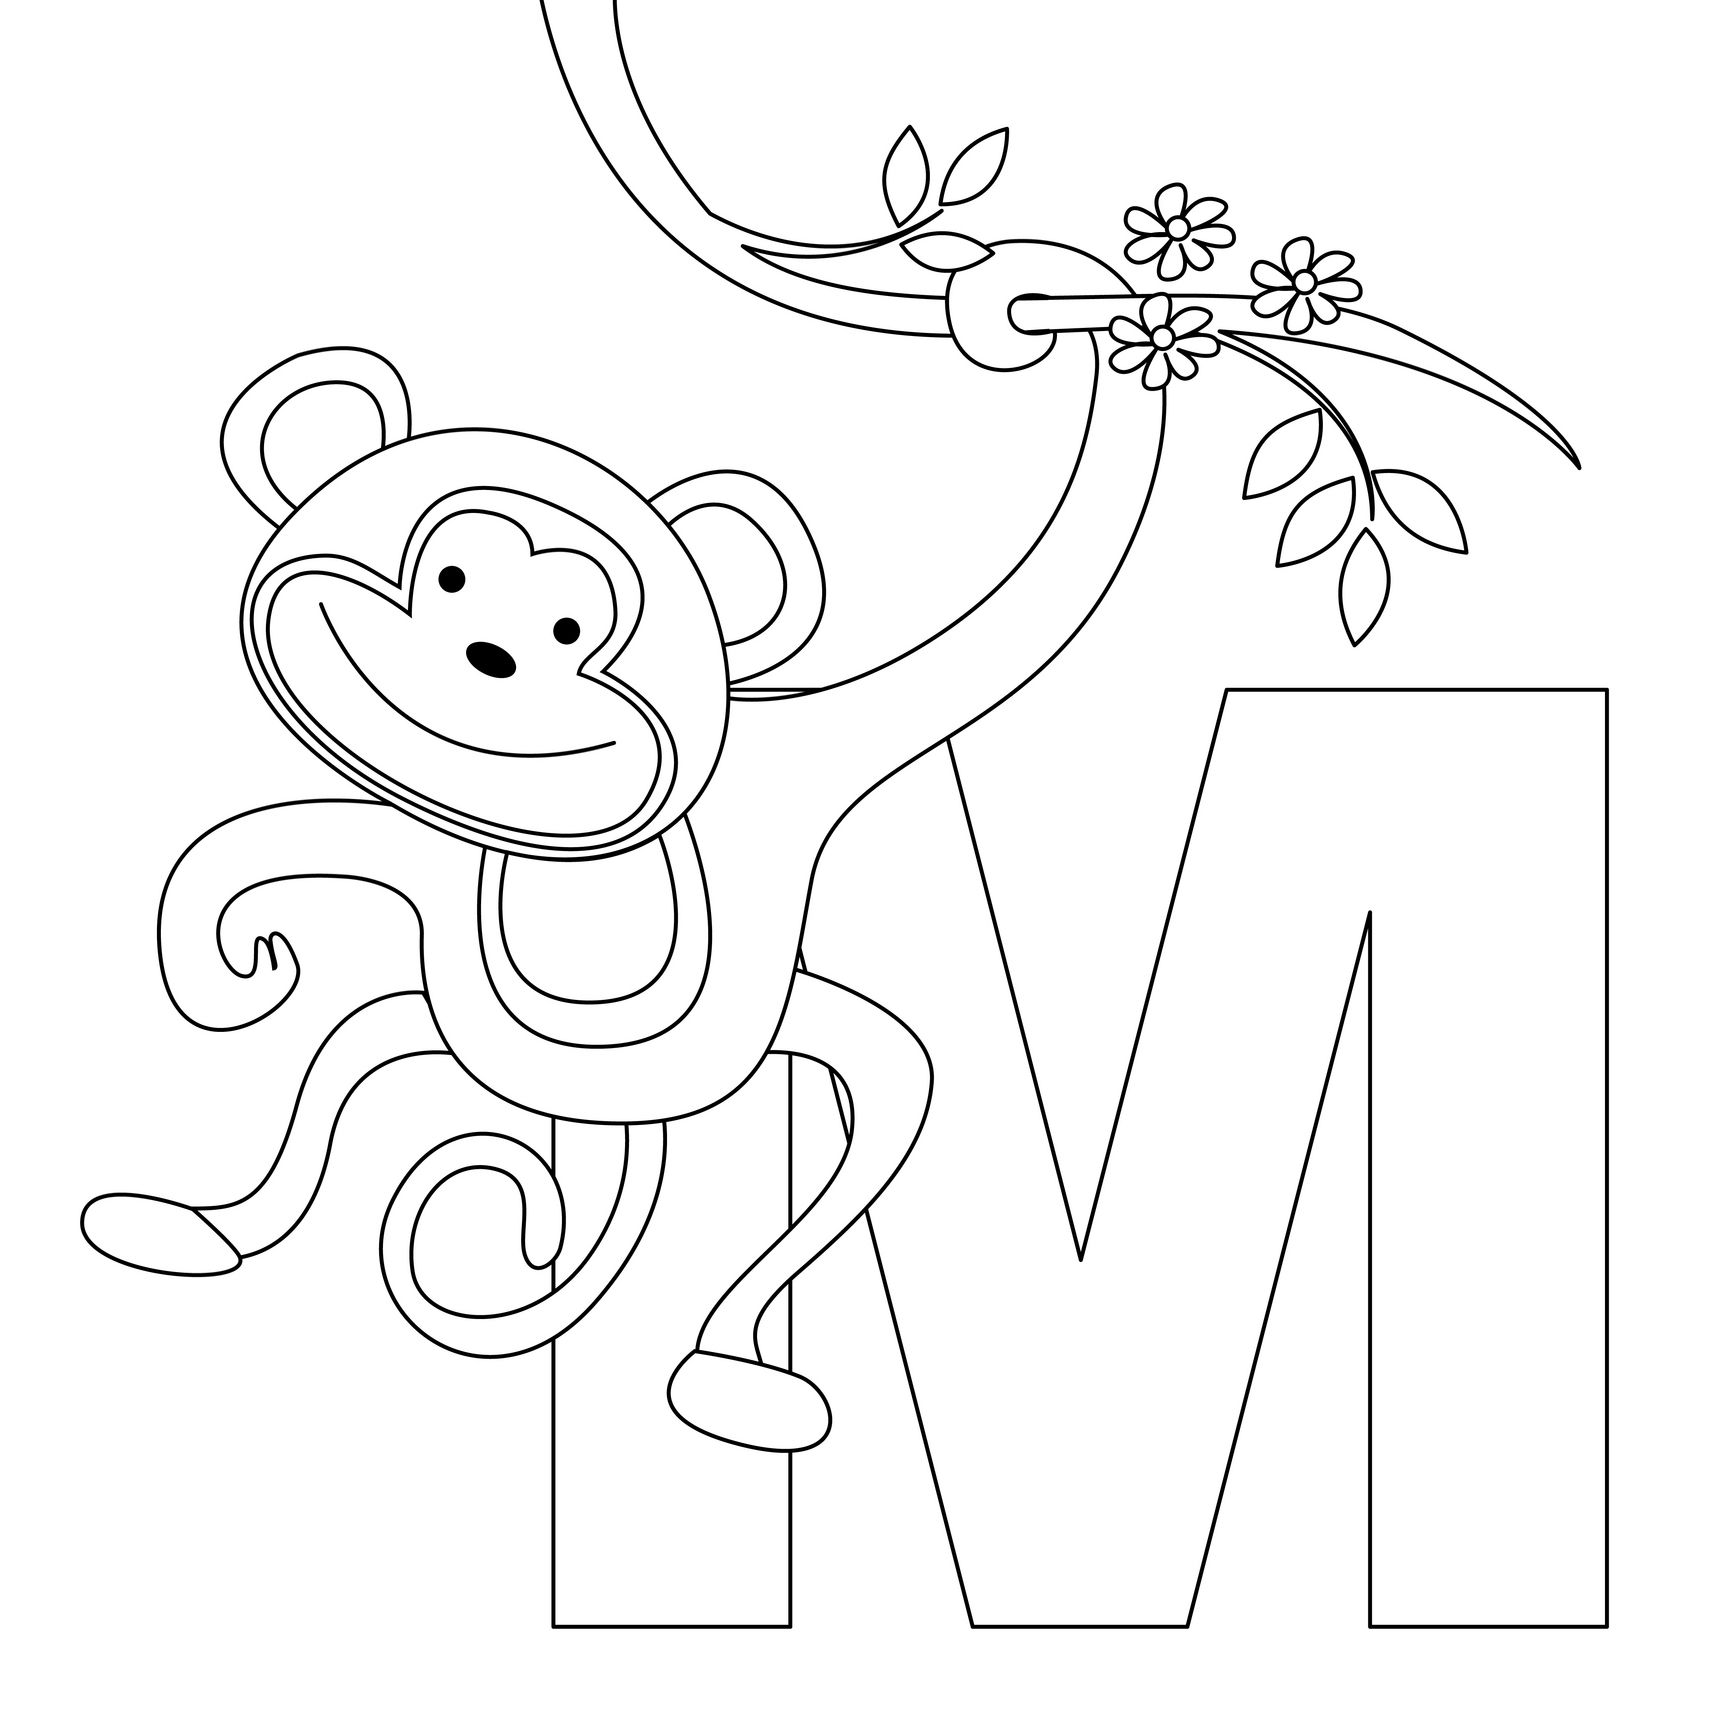 Coloring worksheets phonics - Animal Alphabet Letter M For Monkey Here S A Simple Animal Alphabet Coloring Pagesalphabet